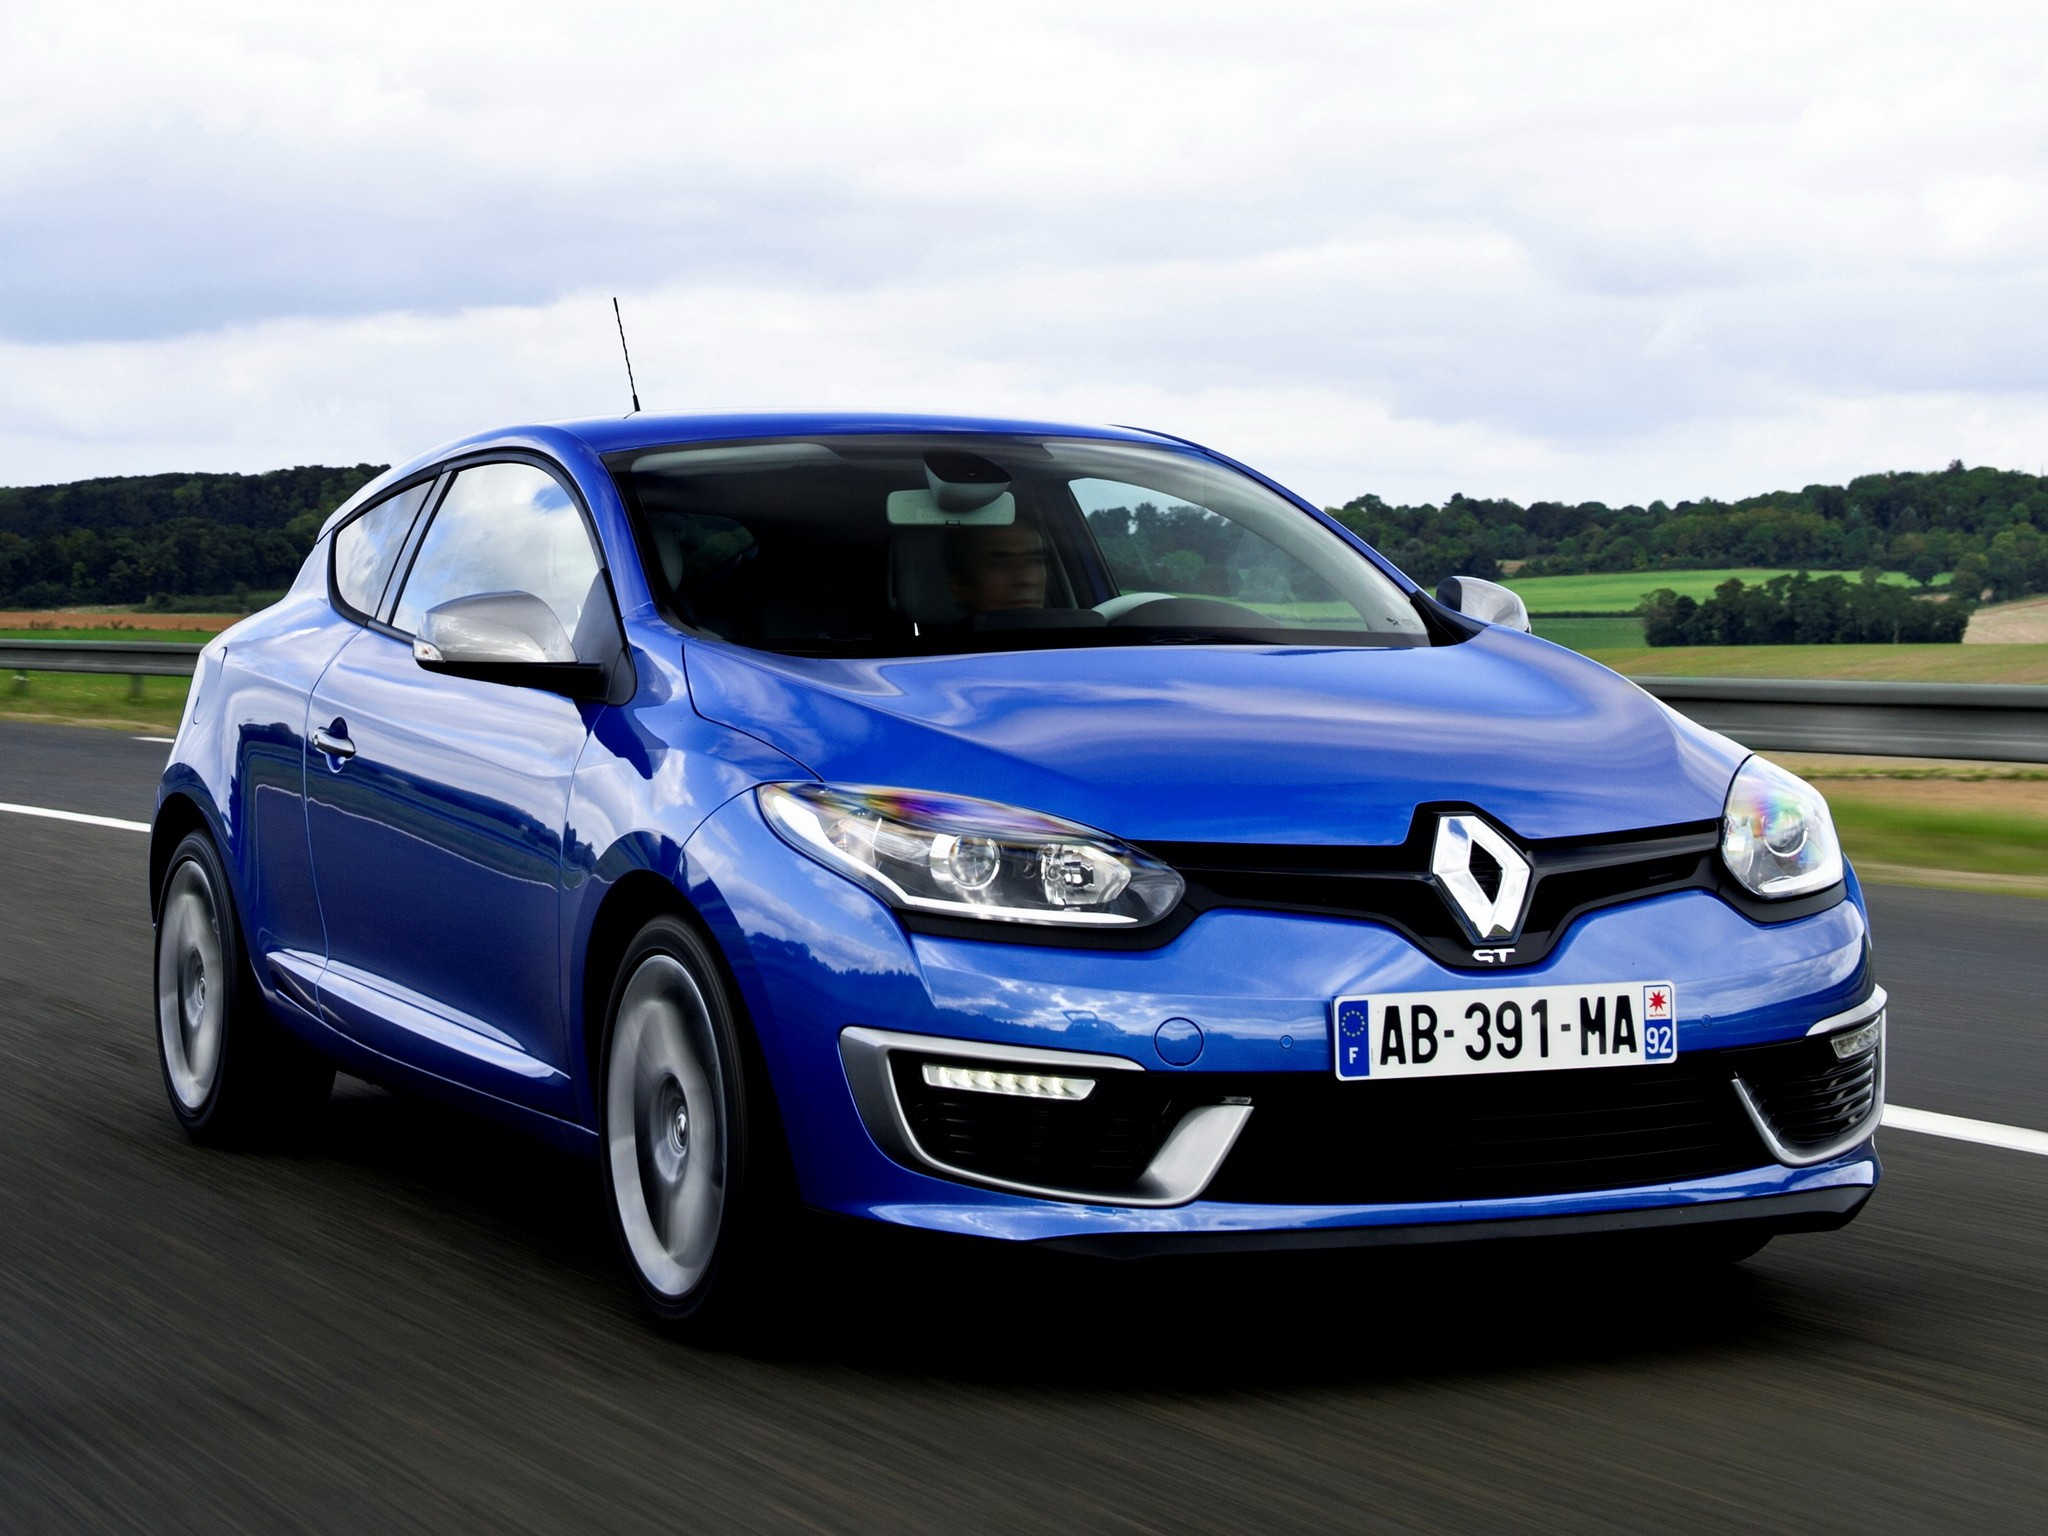 renault megane gt 3 doors specs 2013 2014 2015. Black Bedroom Furniture Sets. Home Design Ideas